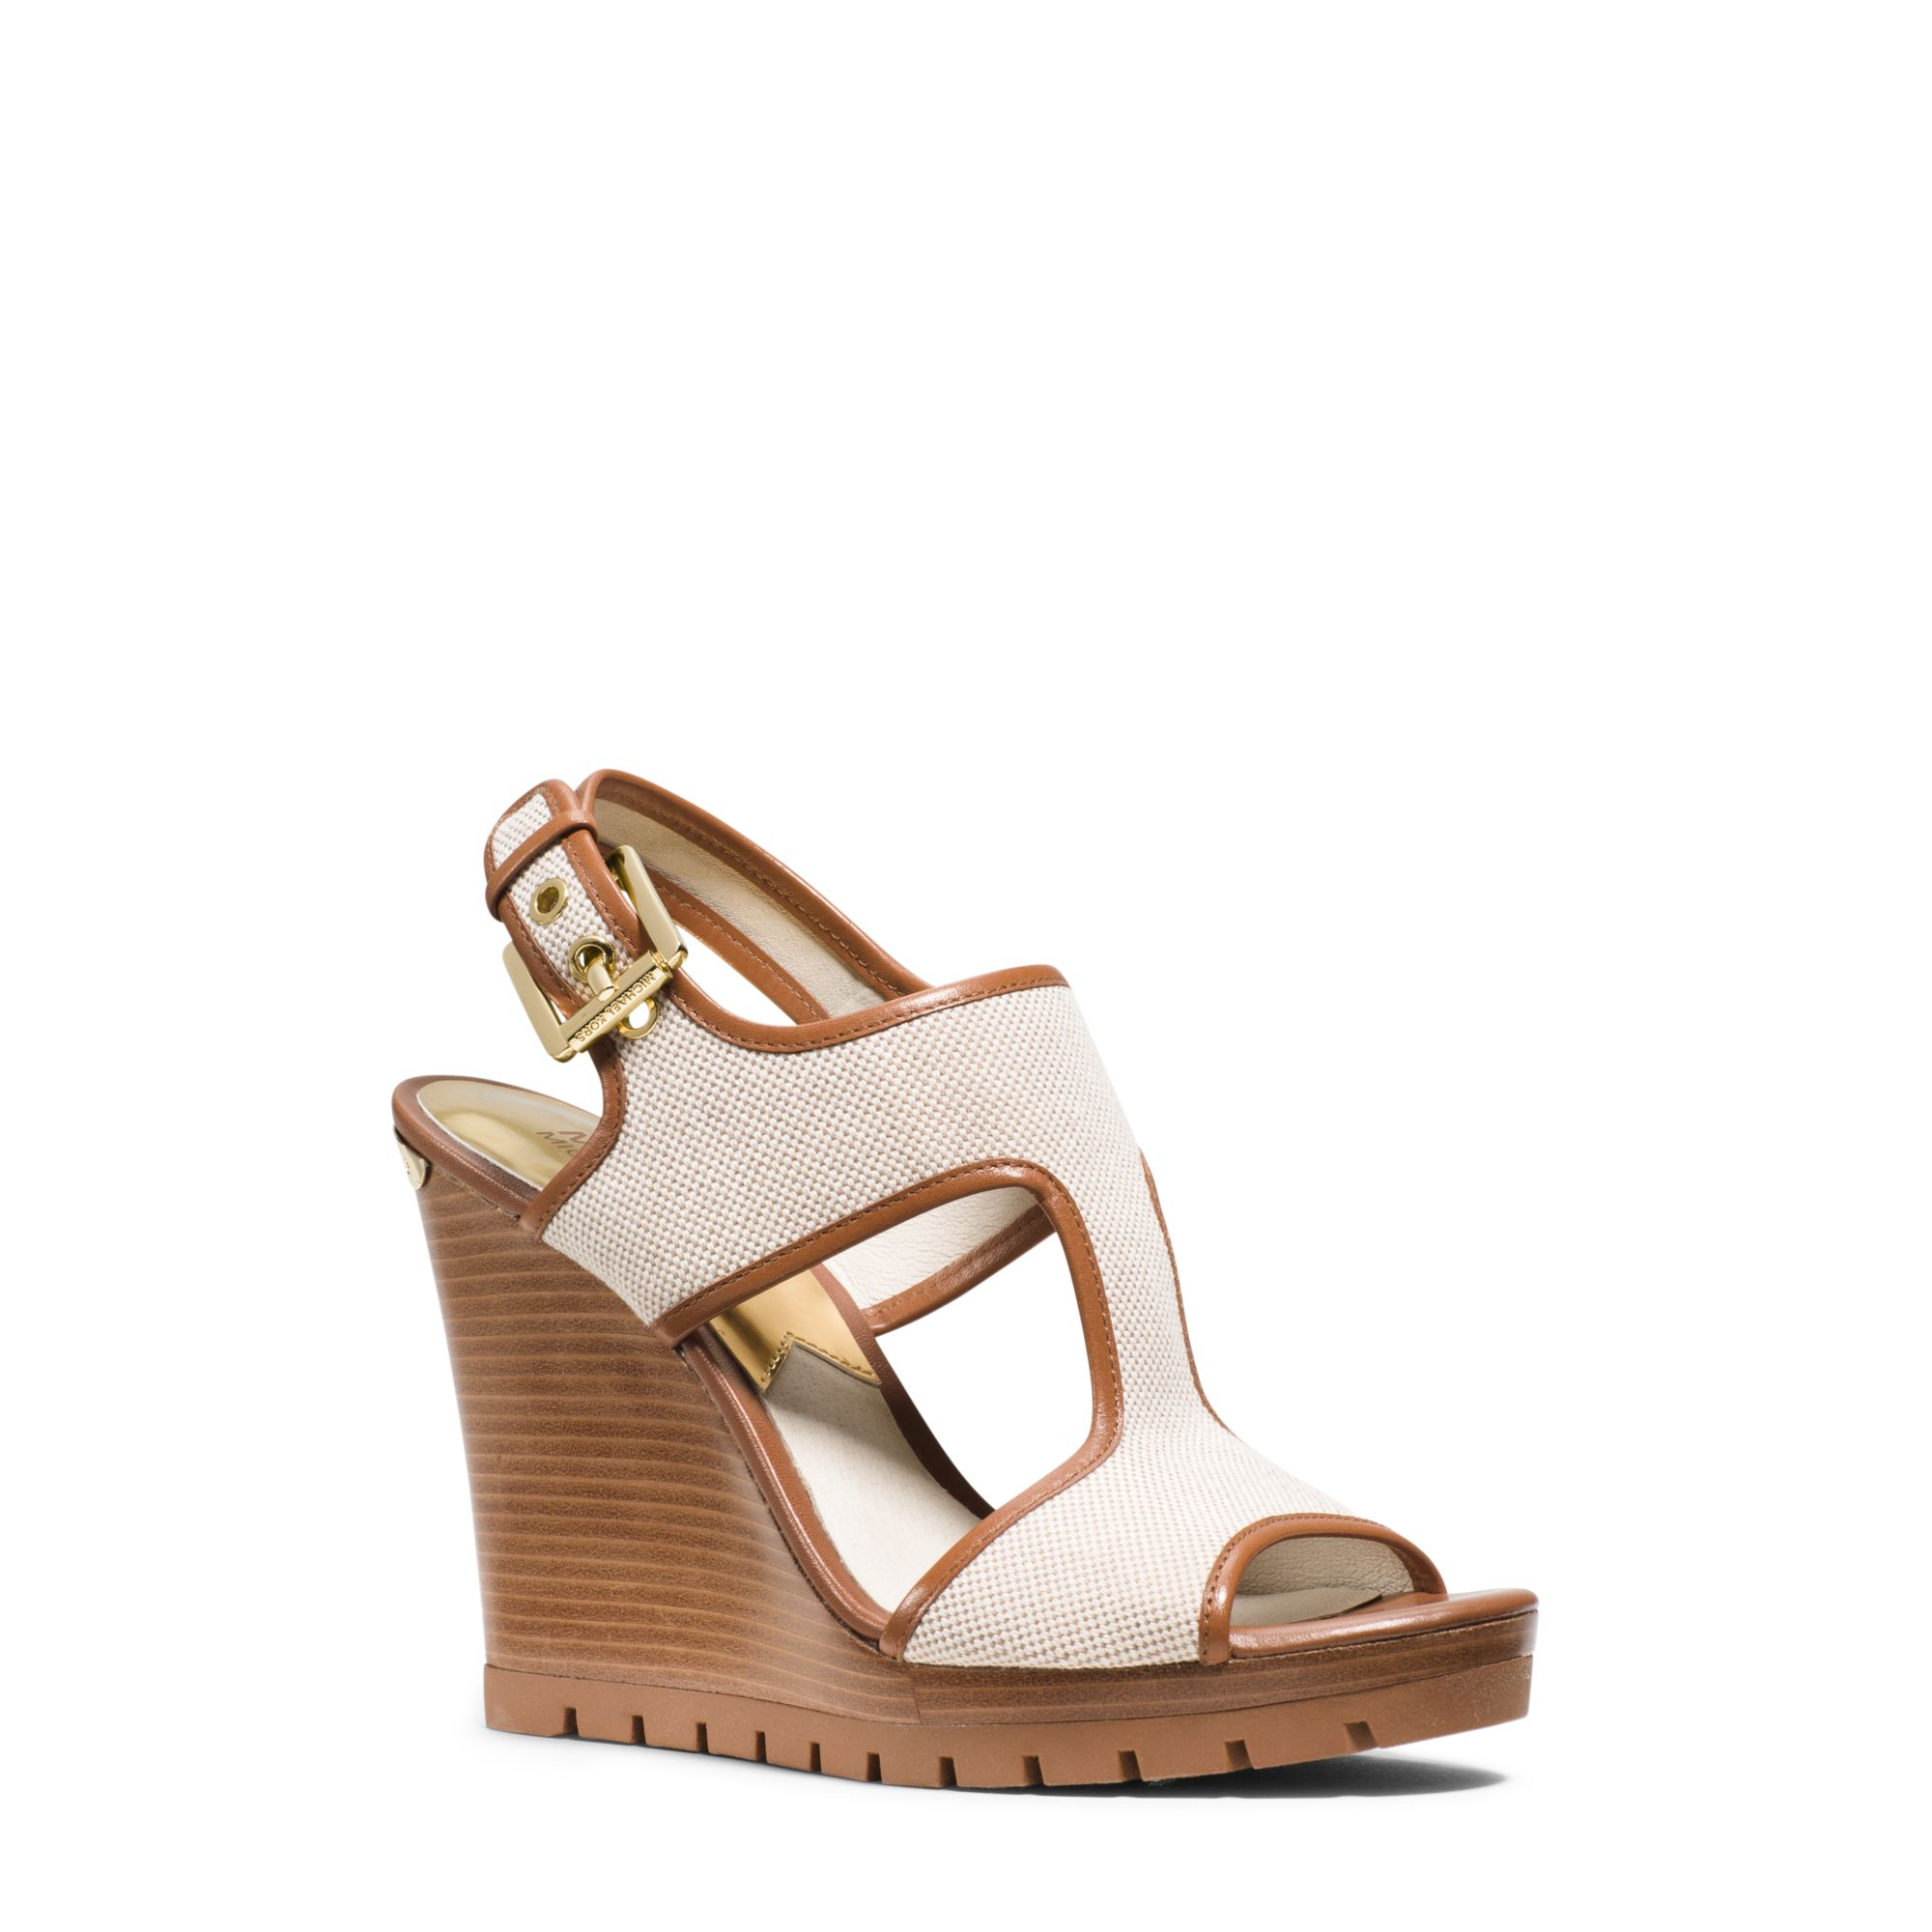 Michael Kors Gillian Canvas And Leather Wedge in Natural Lyst